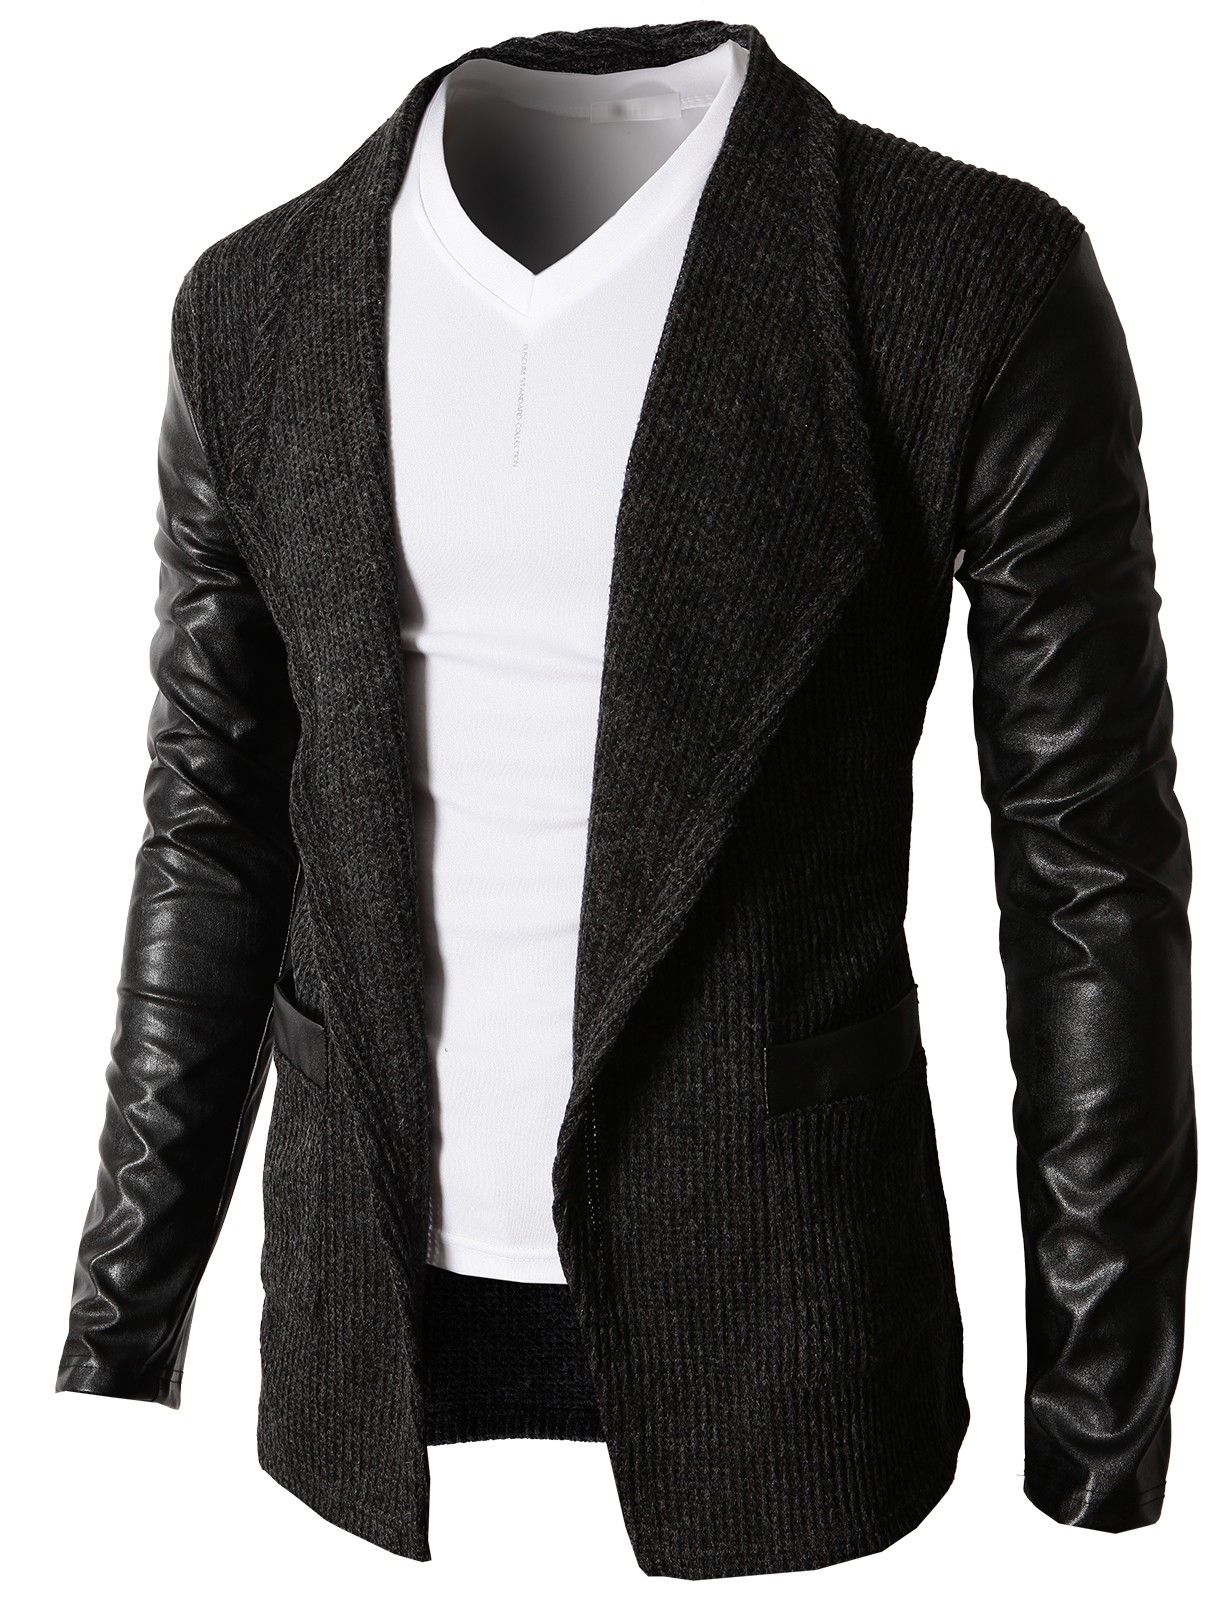 Doublju Men's Cardigan Sweater With Synthetic Leather Long Sleeves ...